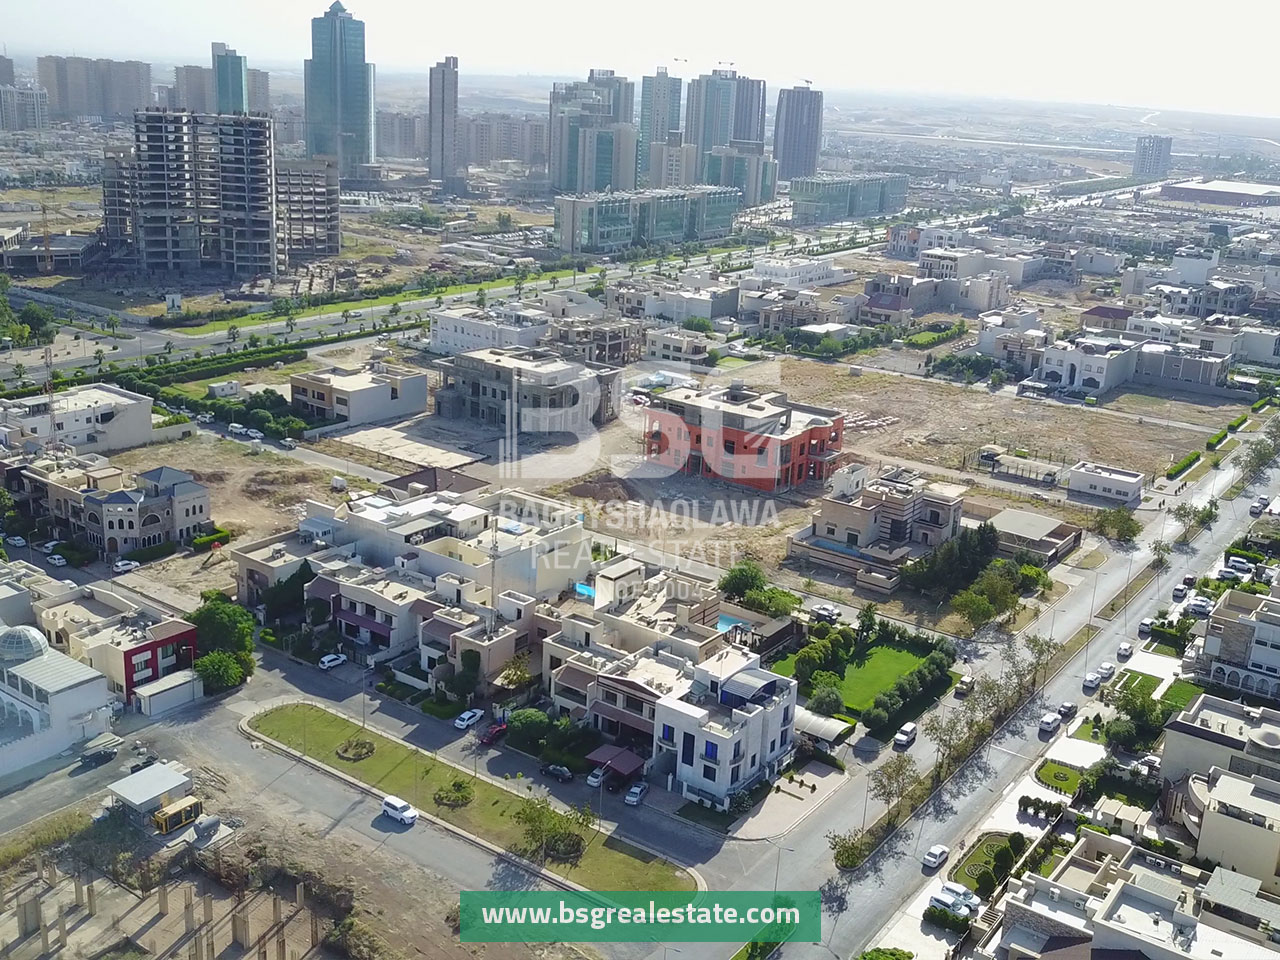 Dream City Projects Baghy Shaqlawa Real Estate Company